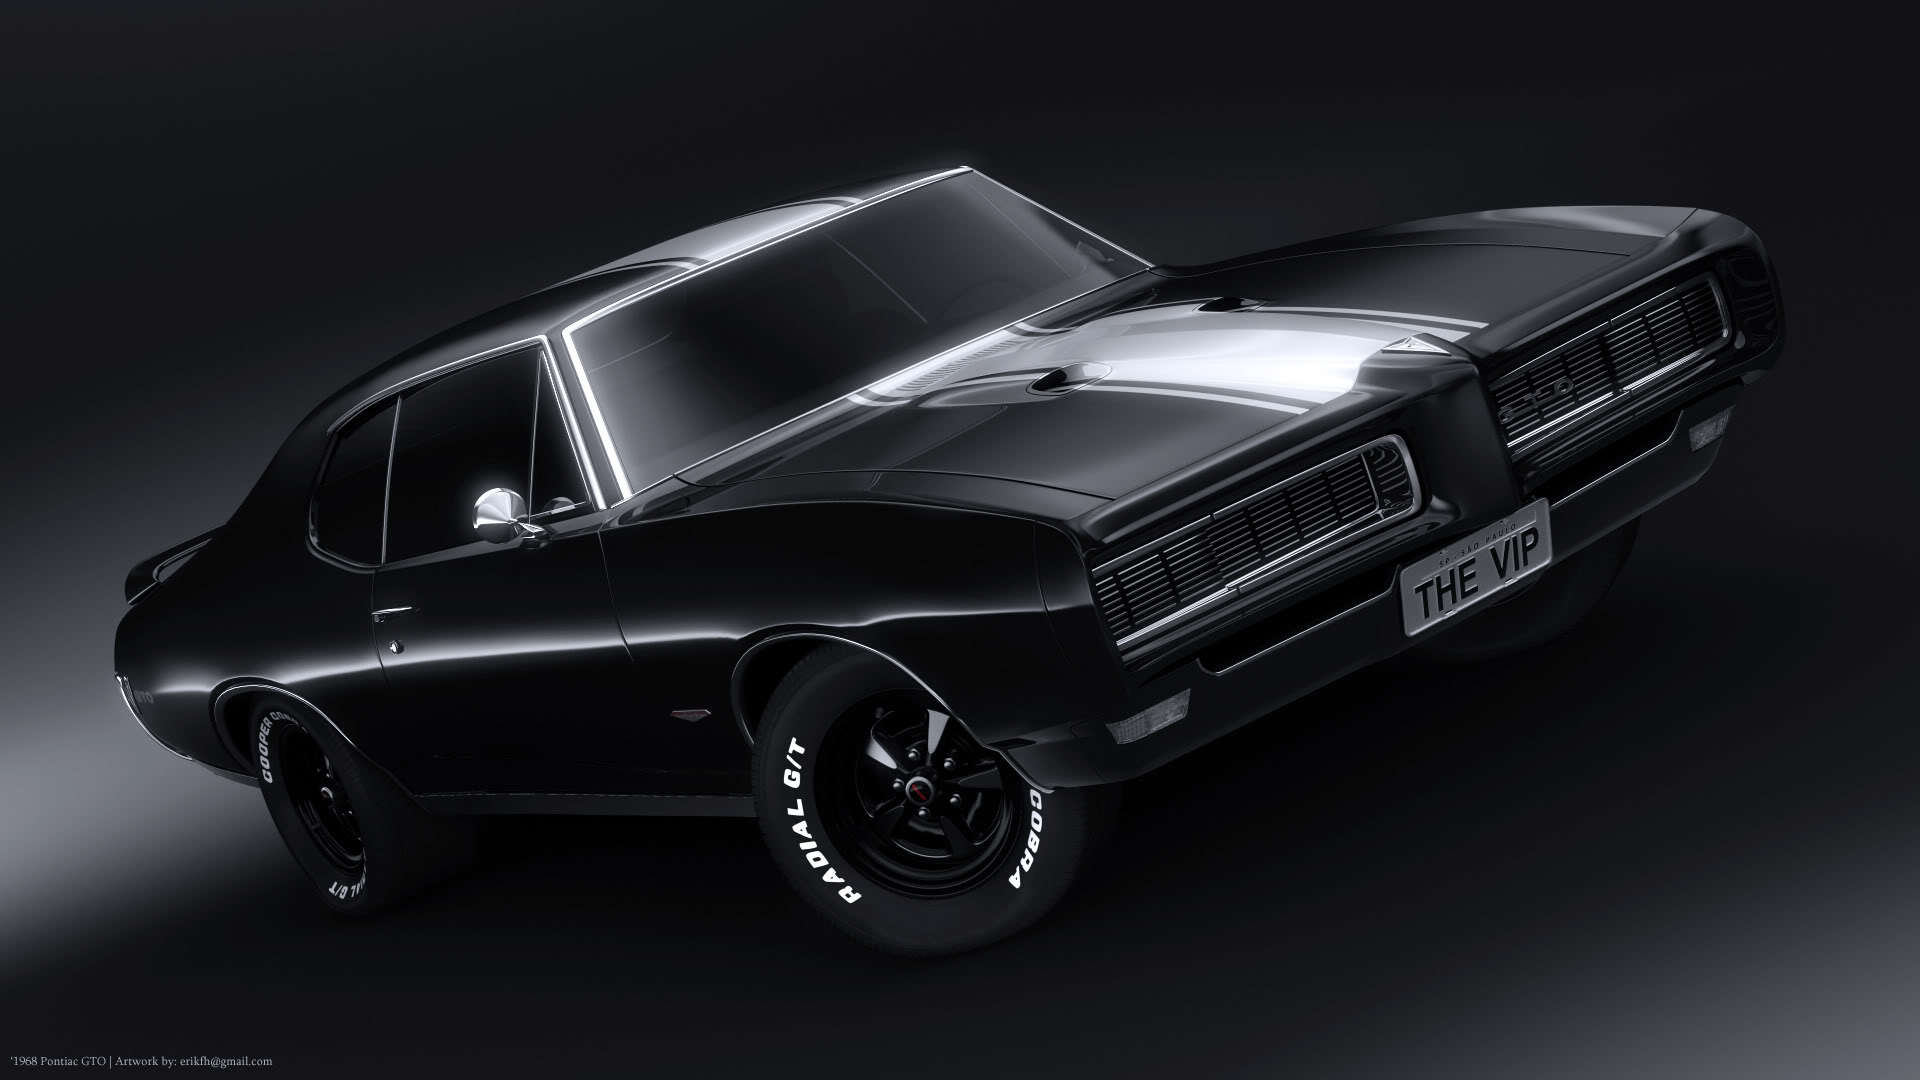 black Pontiac pontiac gto HD Wallpaper